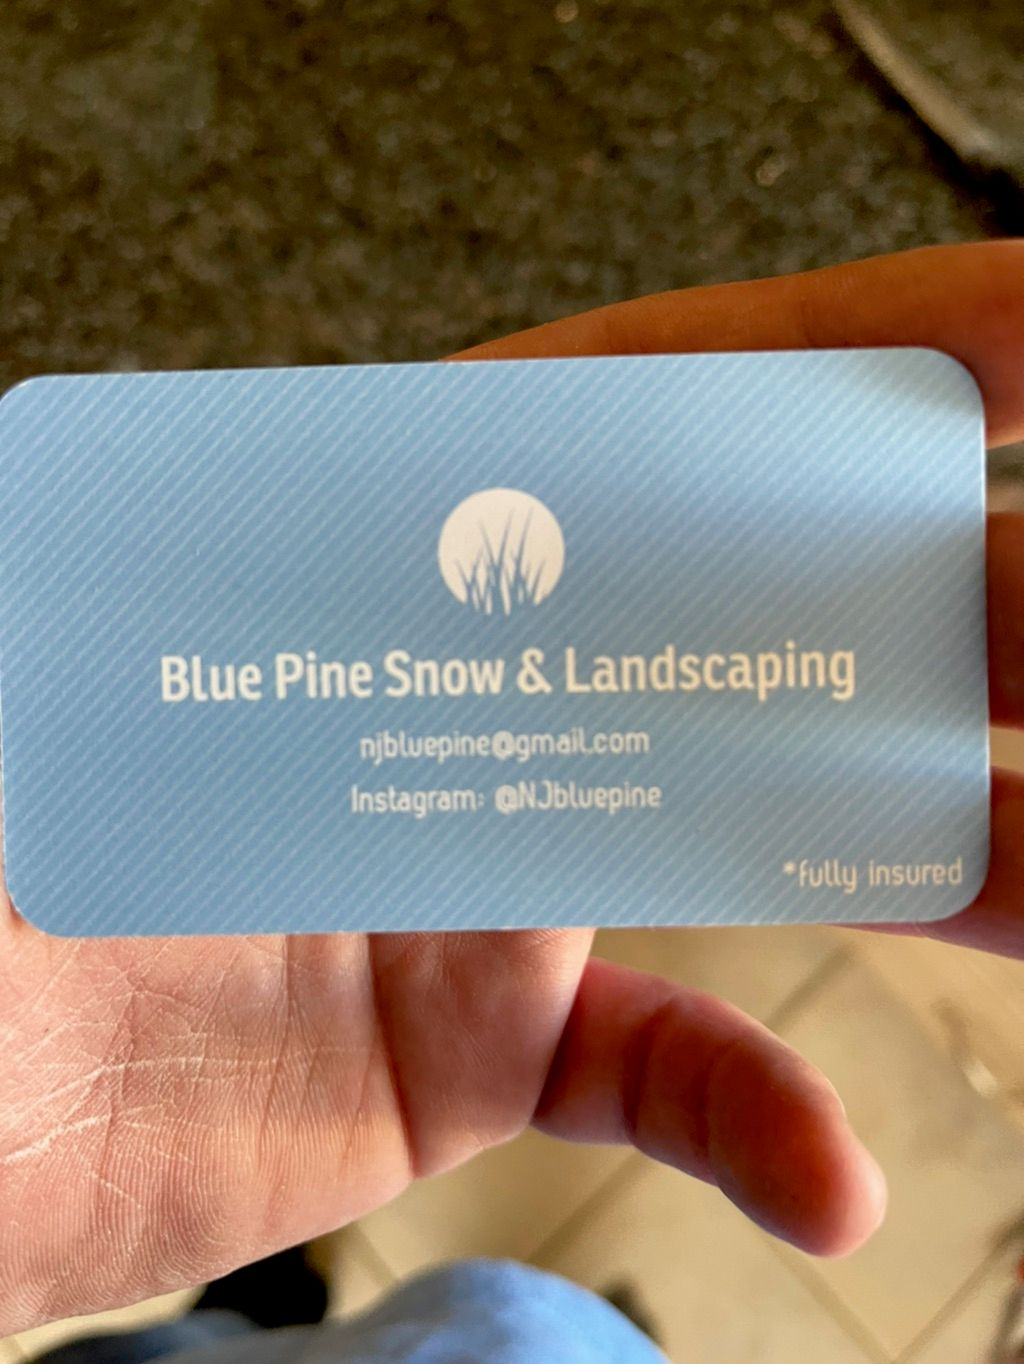 Blue pine snow & landscaping